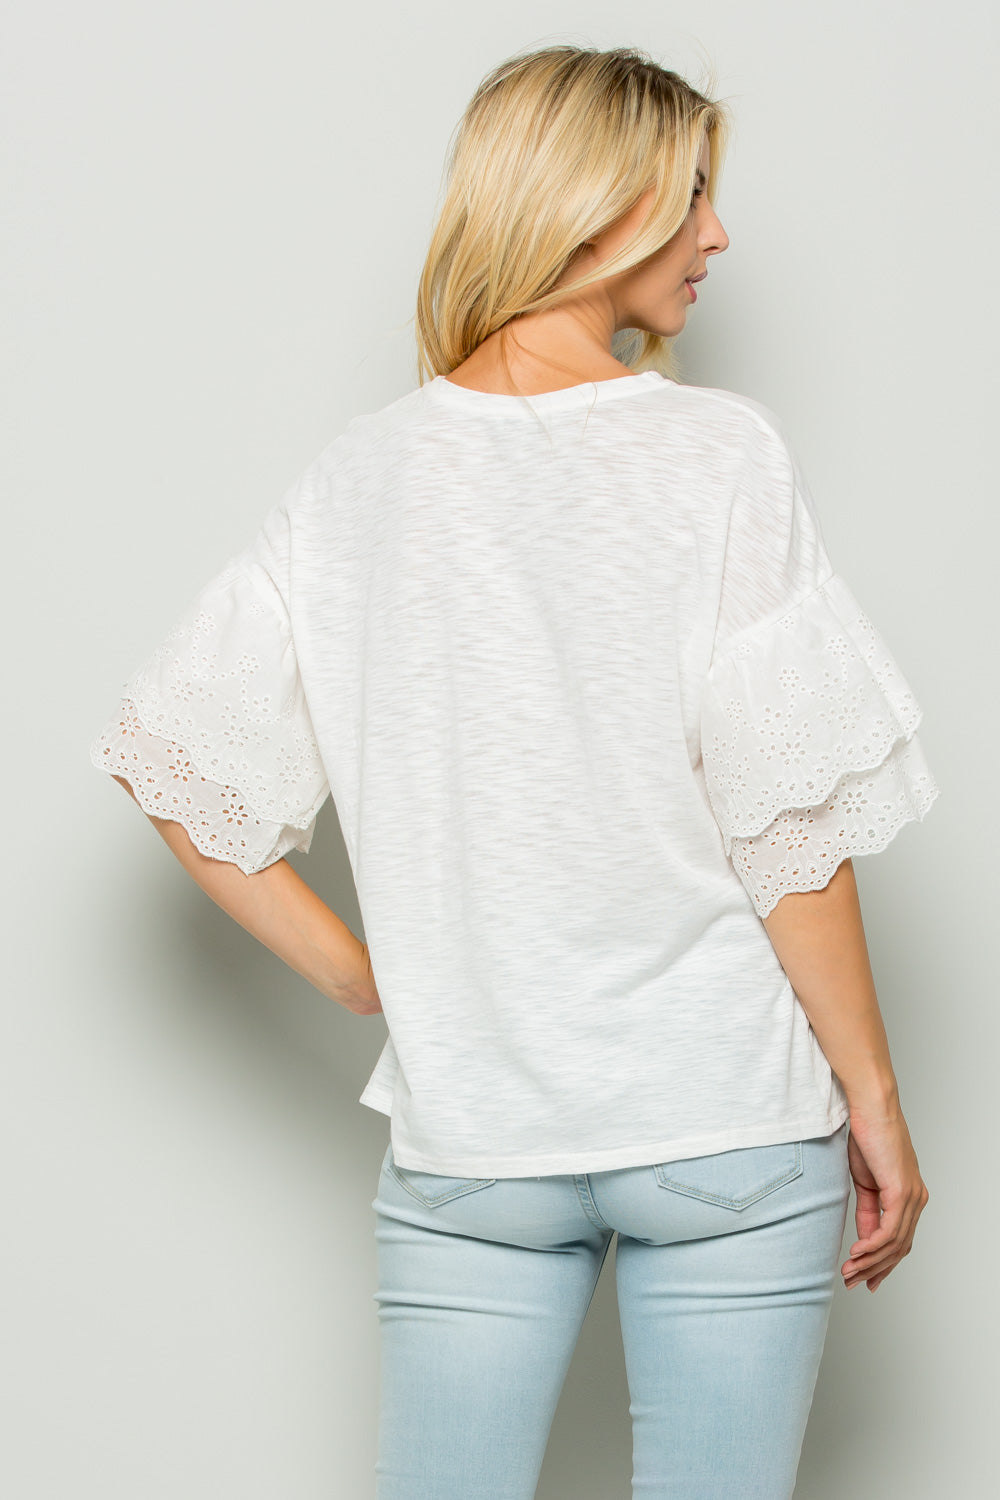 T2442 Double Eyelet Ruffle sleeve Top - White